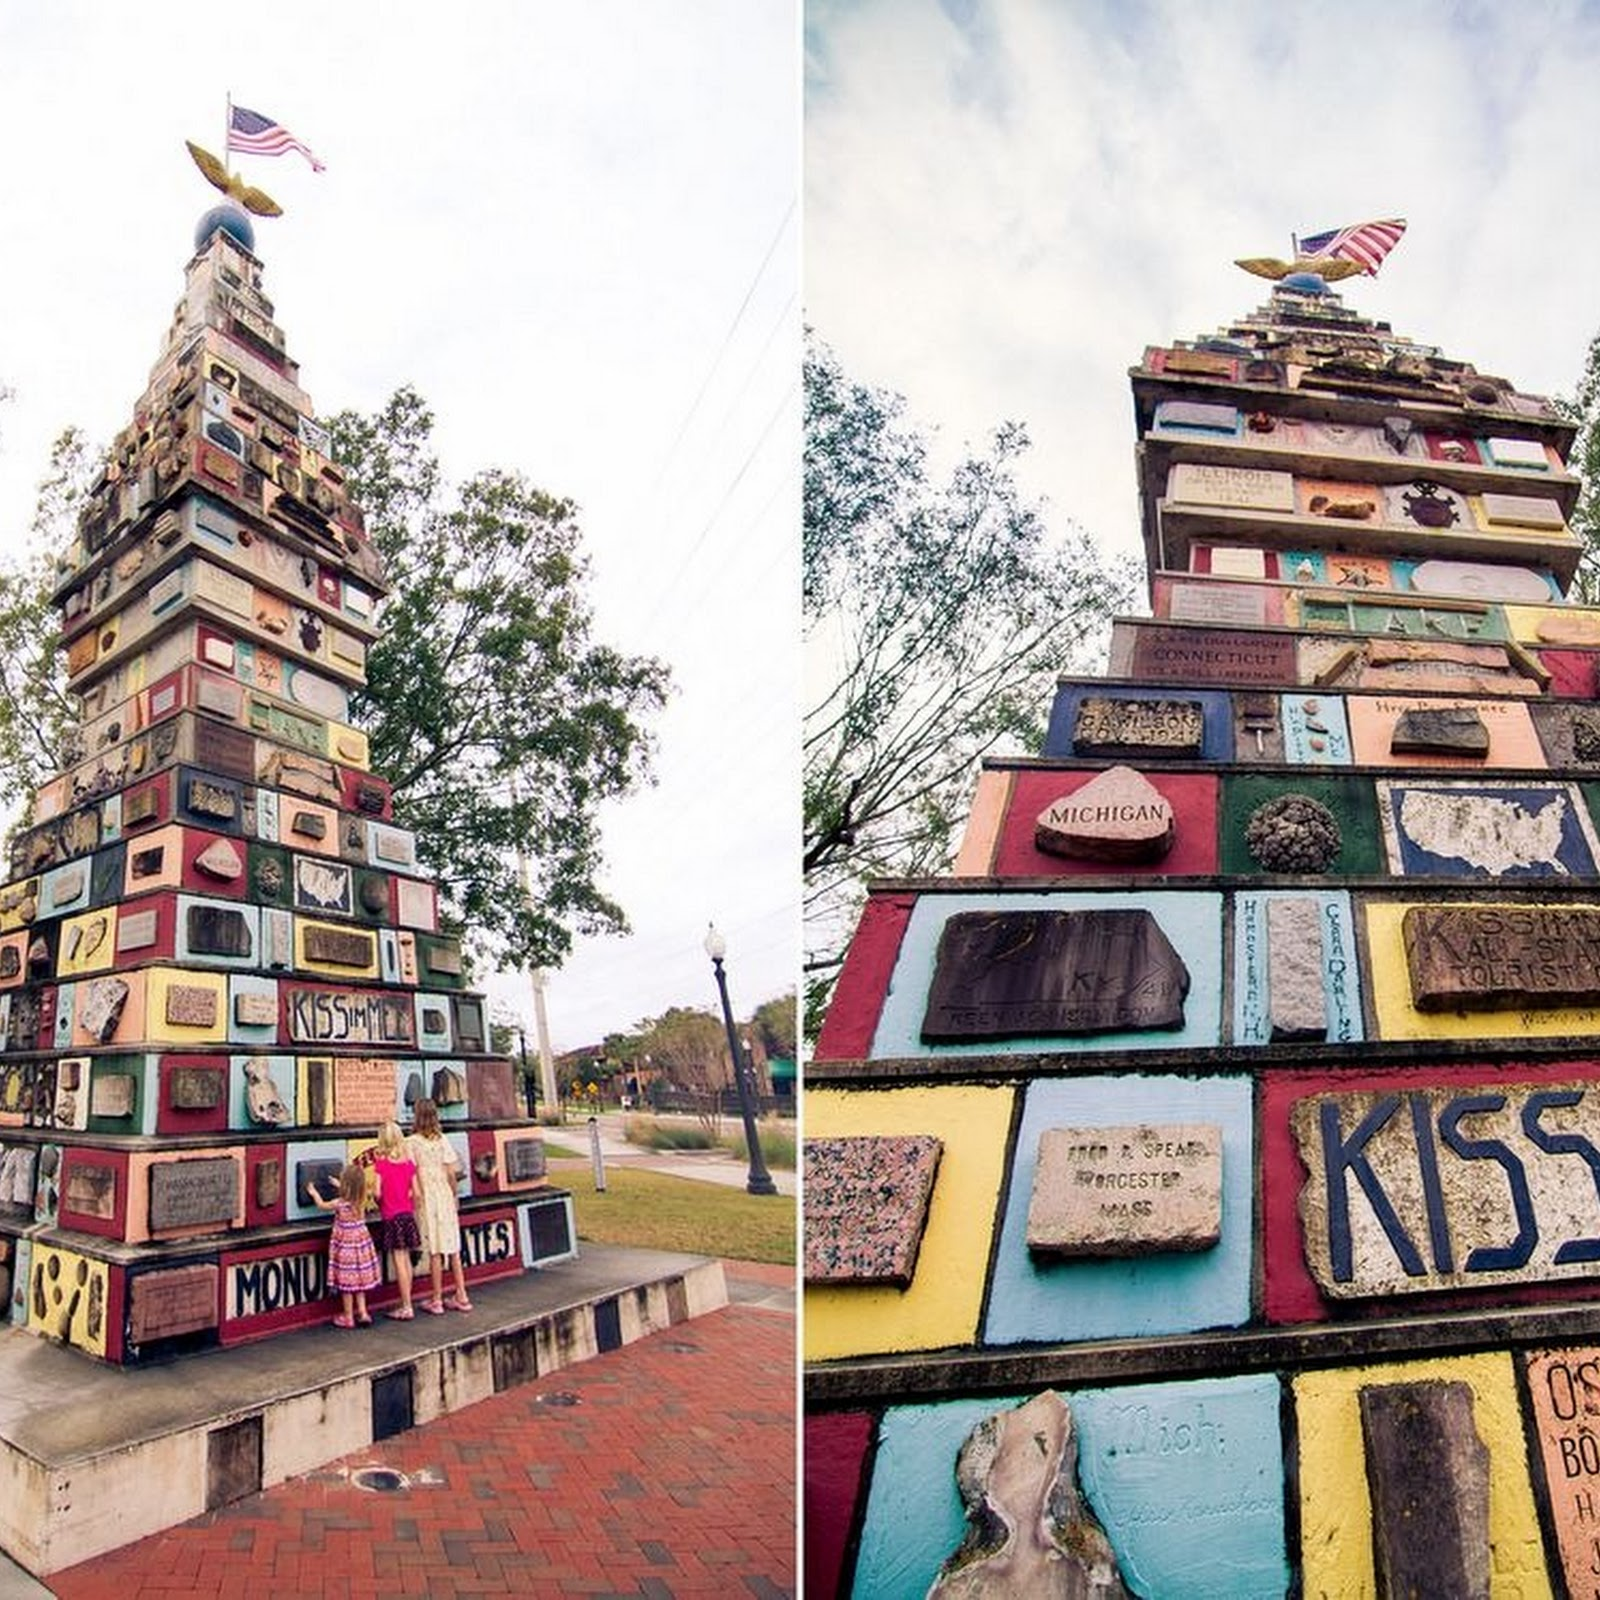 Kissimmee's Monument of States